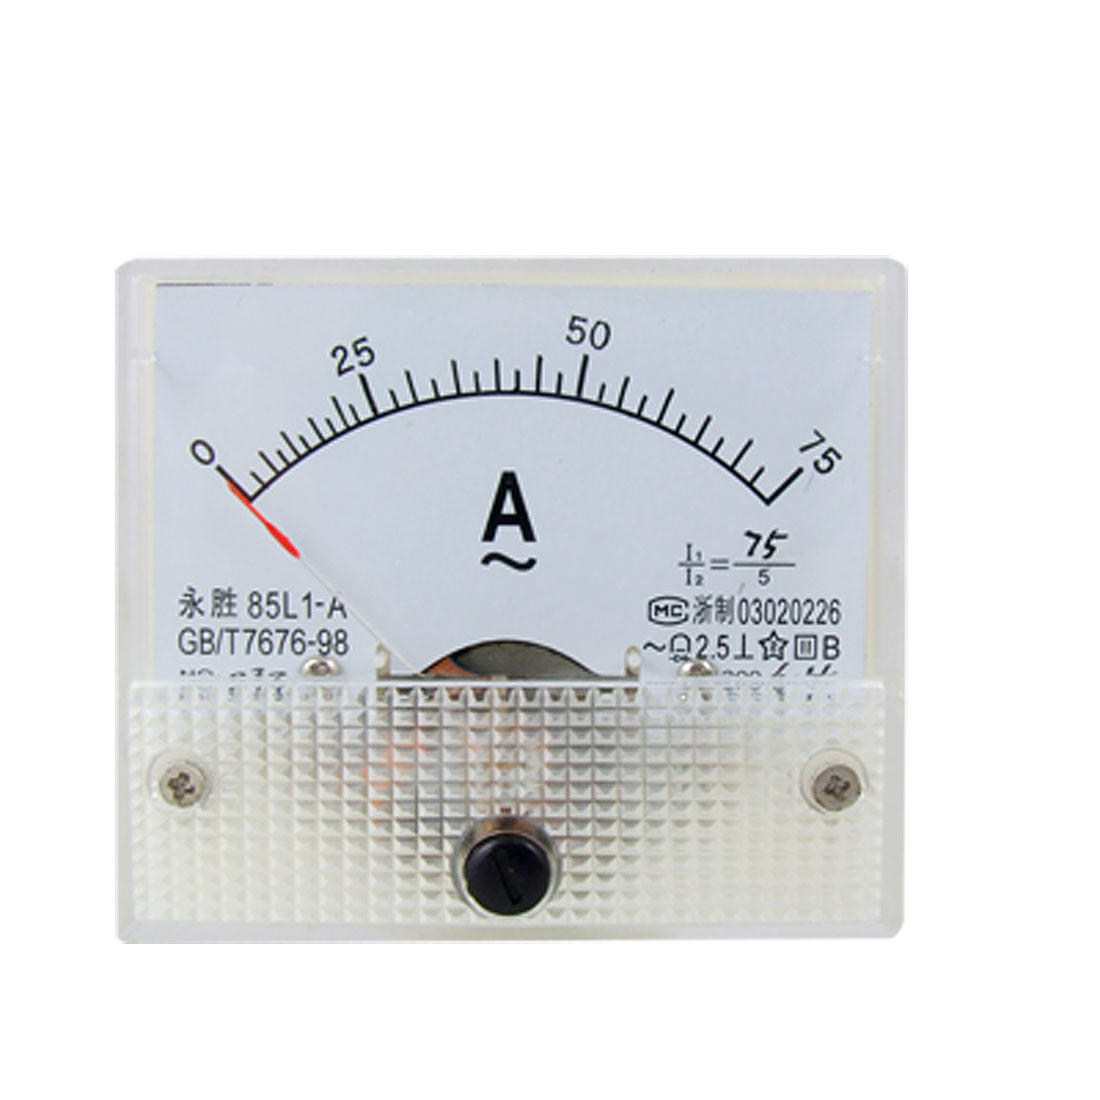 85L1 AC 0-75A Rectangle Analog Panel Ammeter Gauge